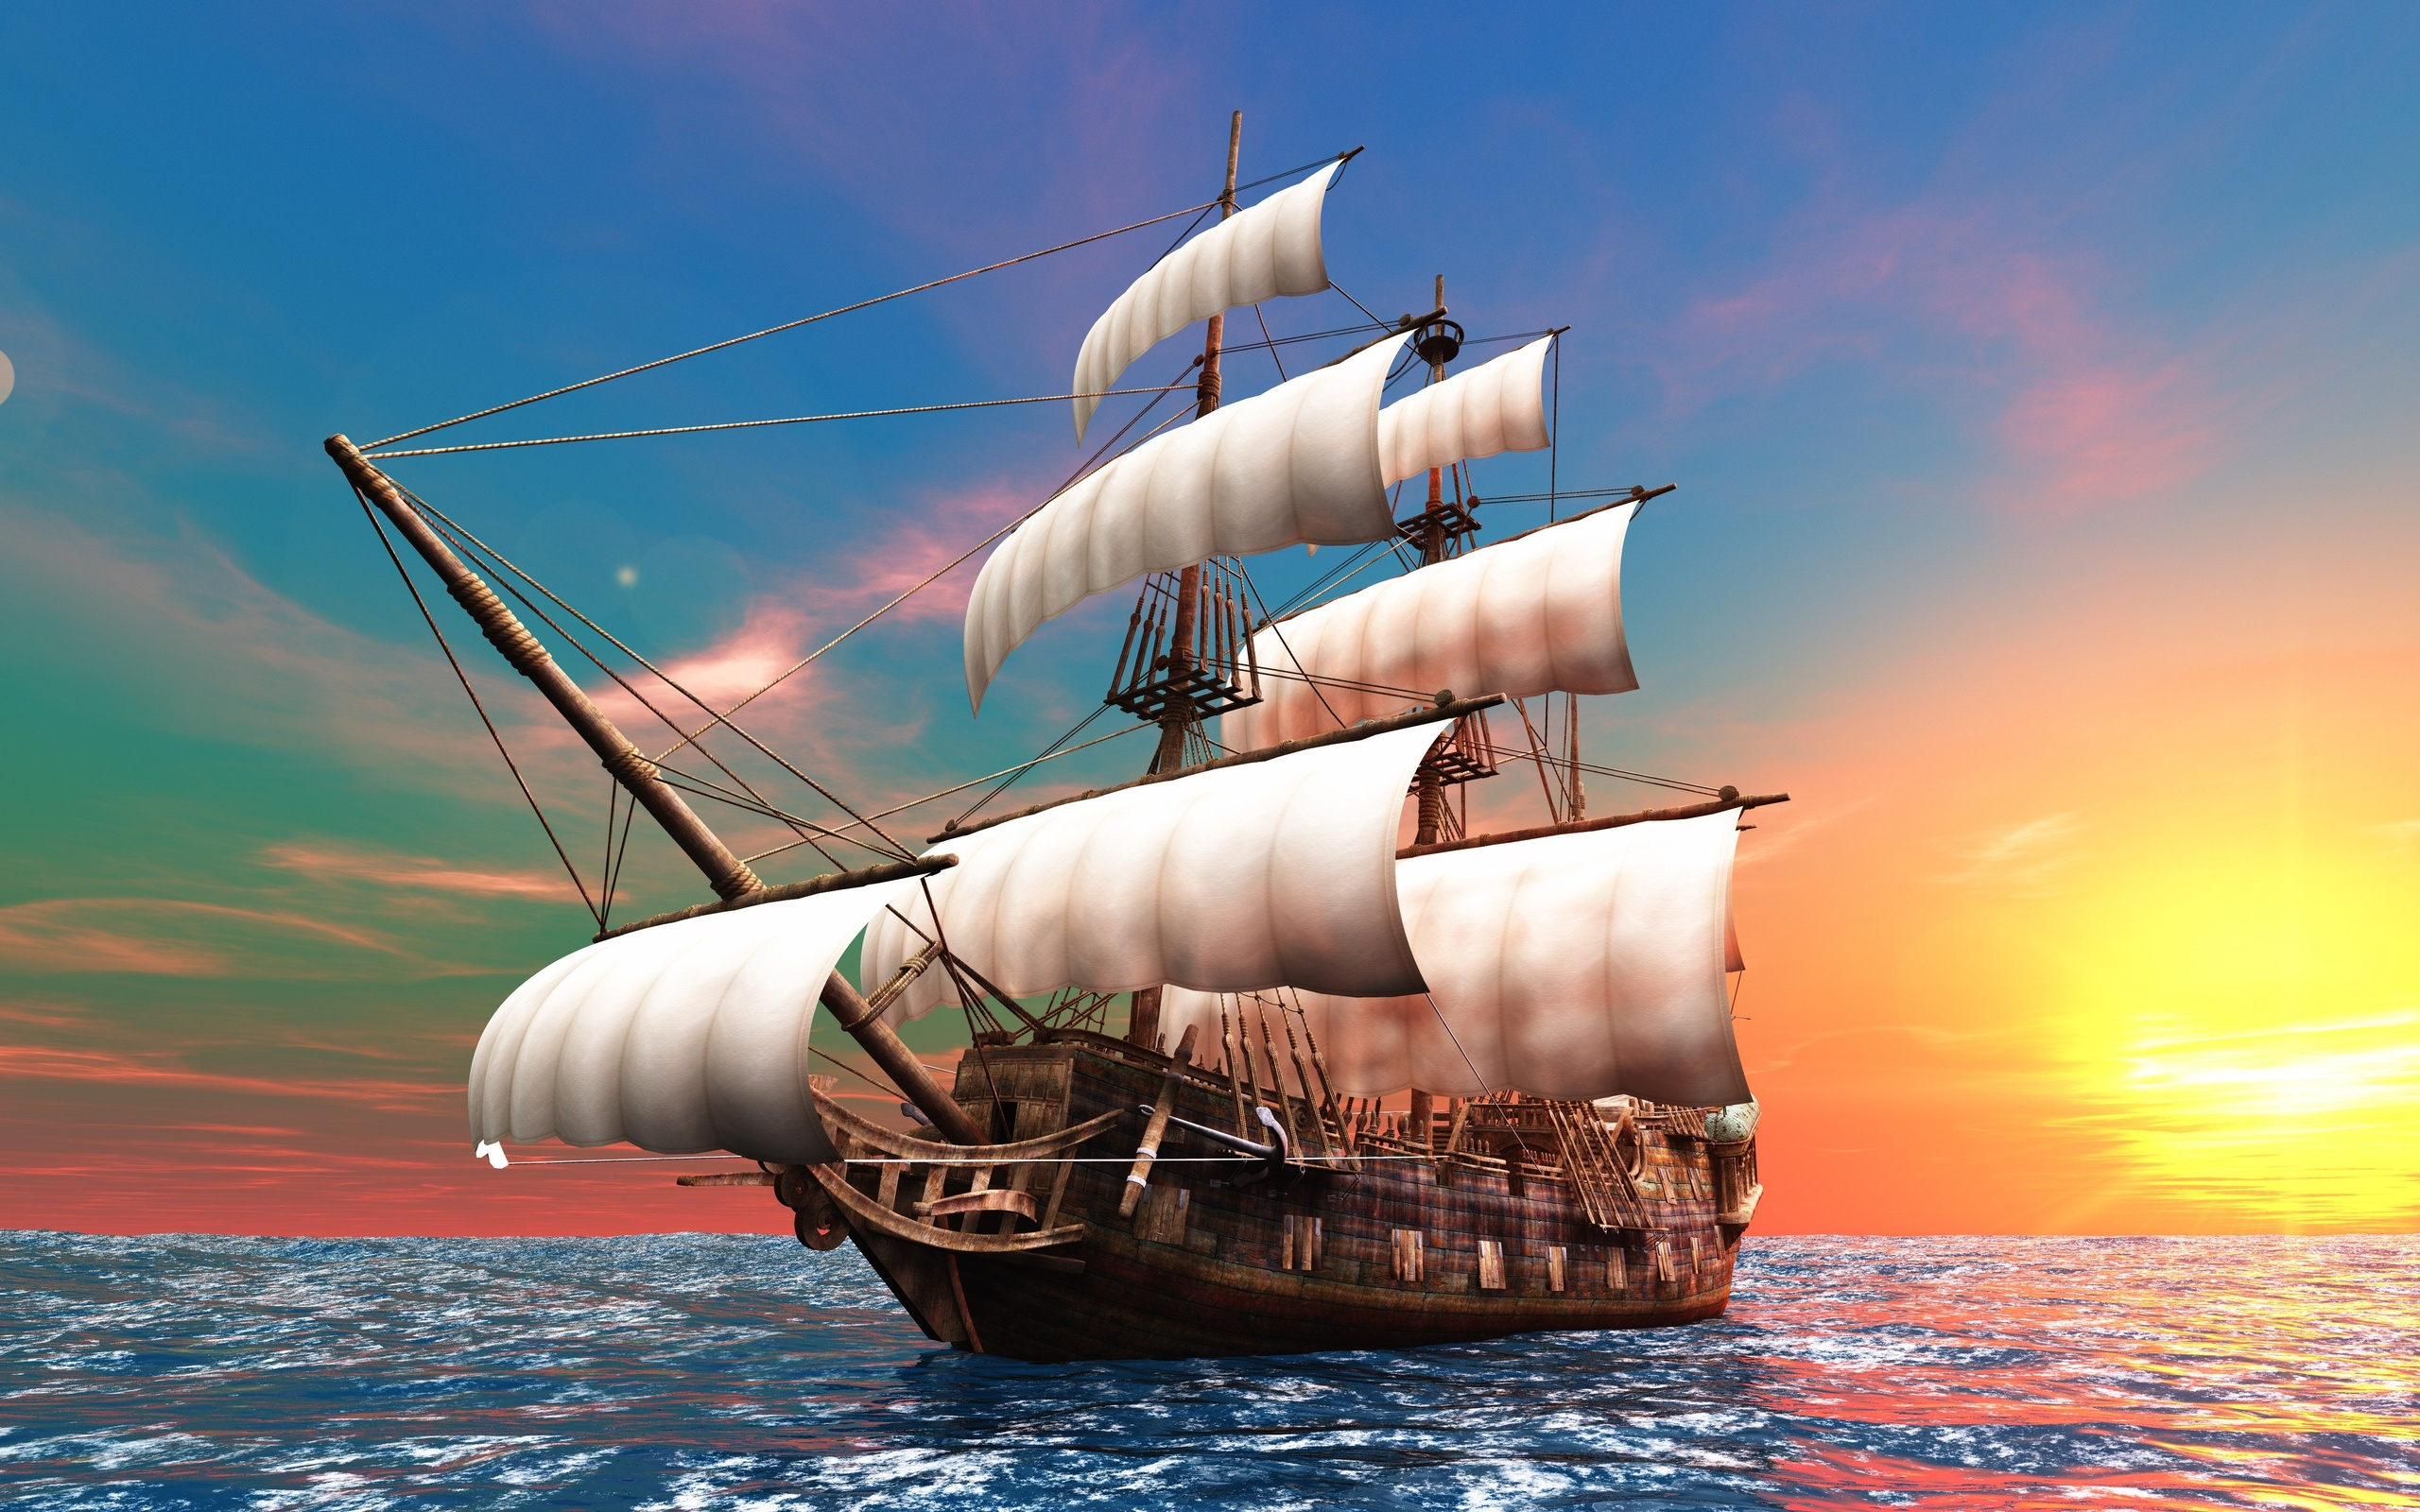 pirate ship computer wallpapers - photo #34